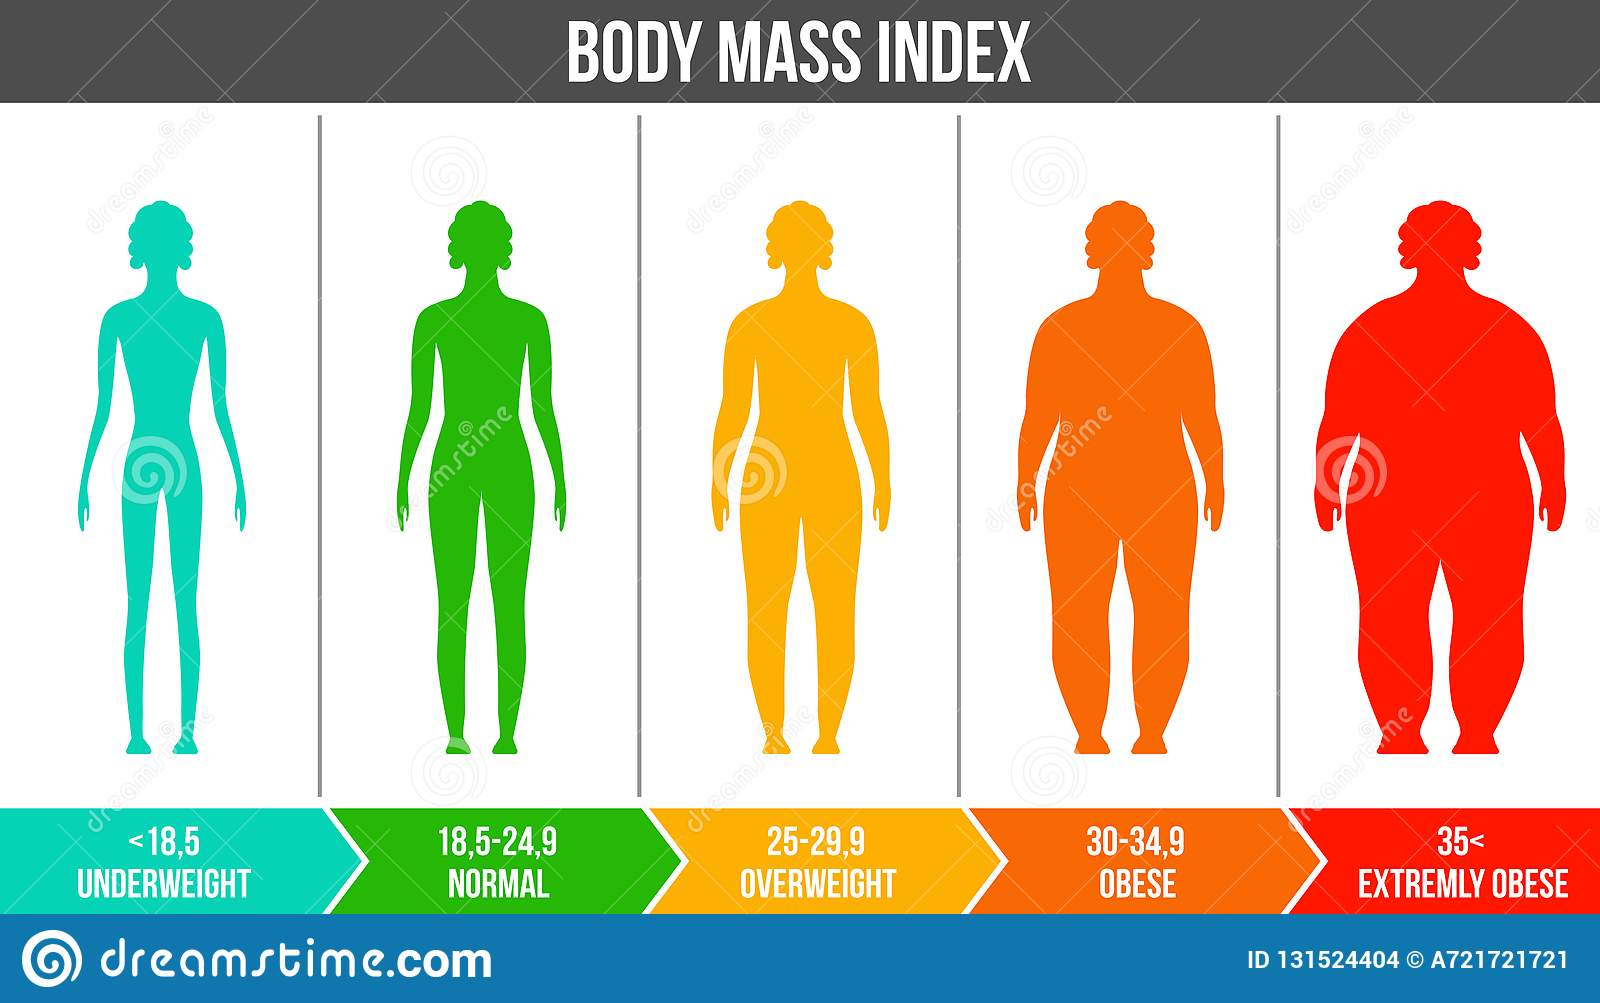 Creative vector illustration of bmi, body mass index infographic chart with silhouettes and scale isolated on